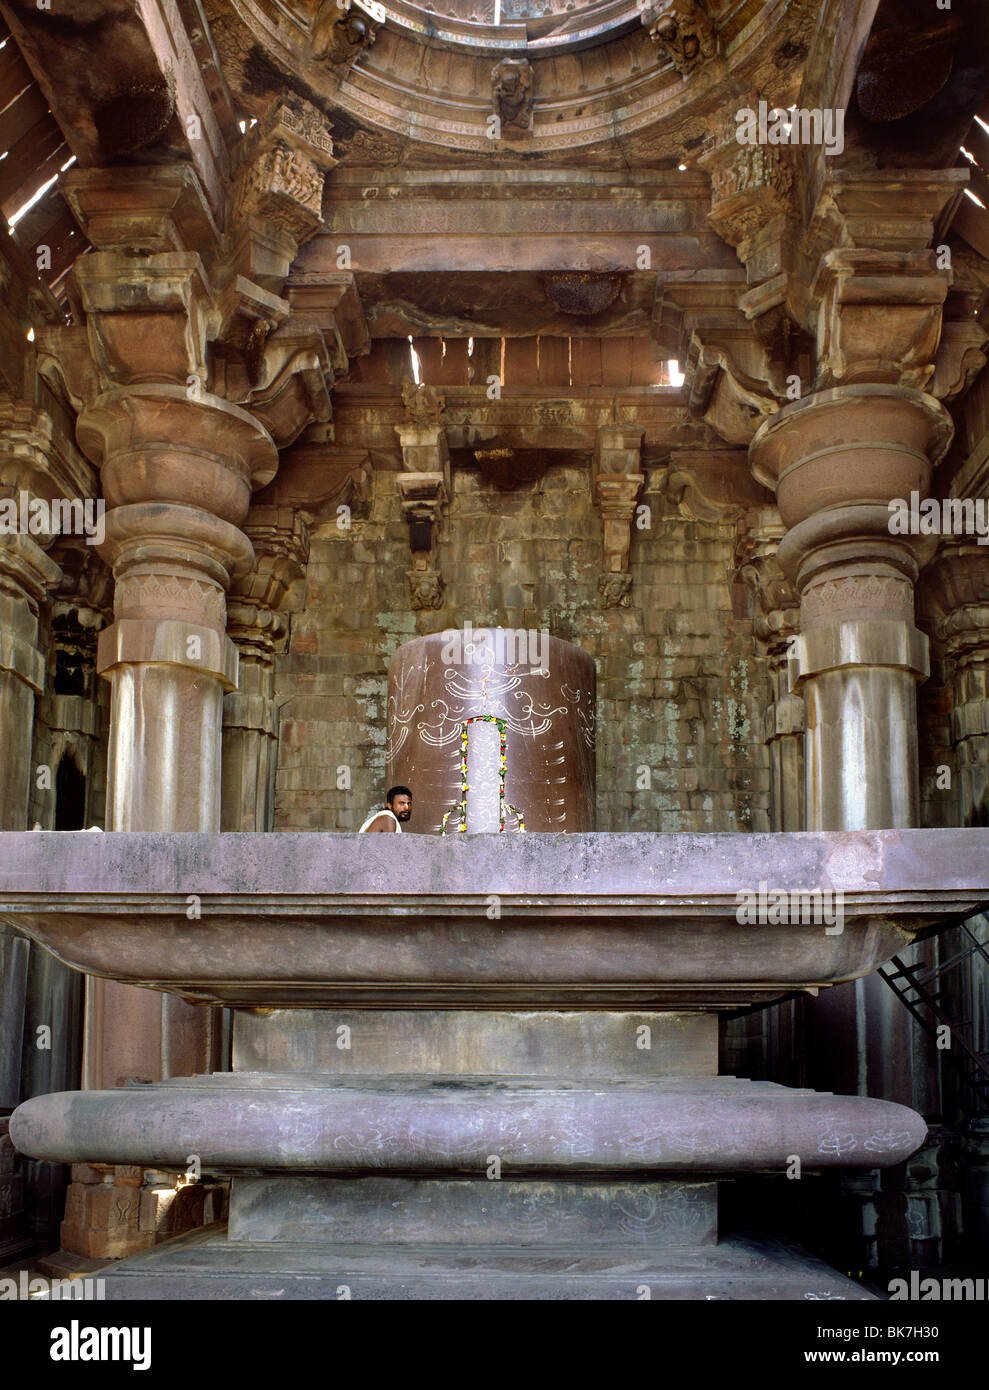 Giant Shivalingam in the Shiva temple, dating from the 11th century Paramara dynasty, Bhojpur, Bihar, India, Asia - Stock Image